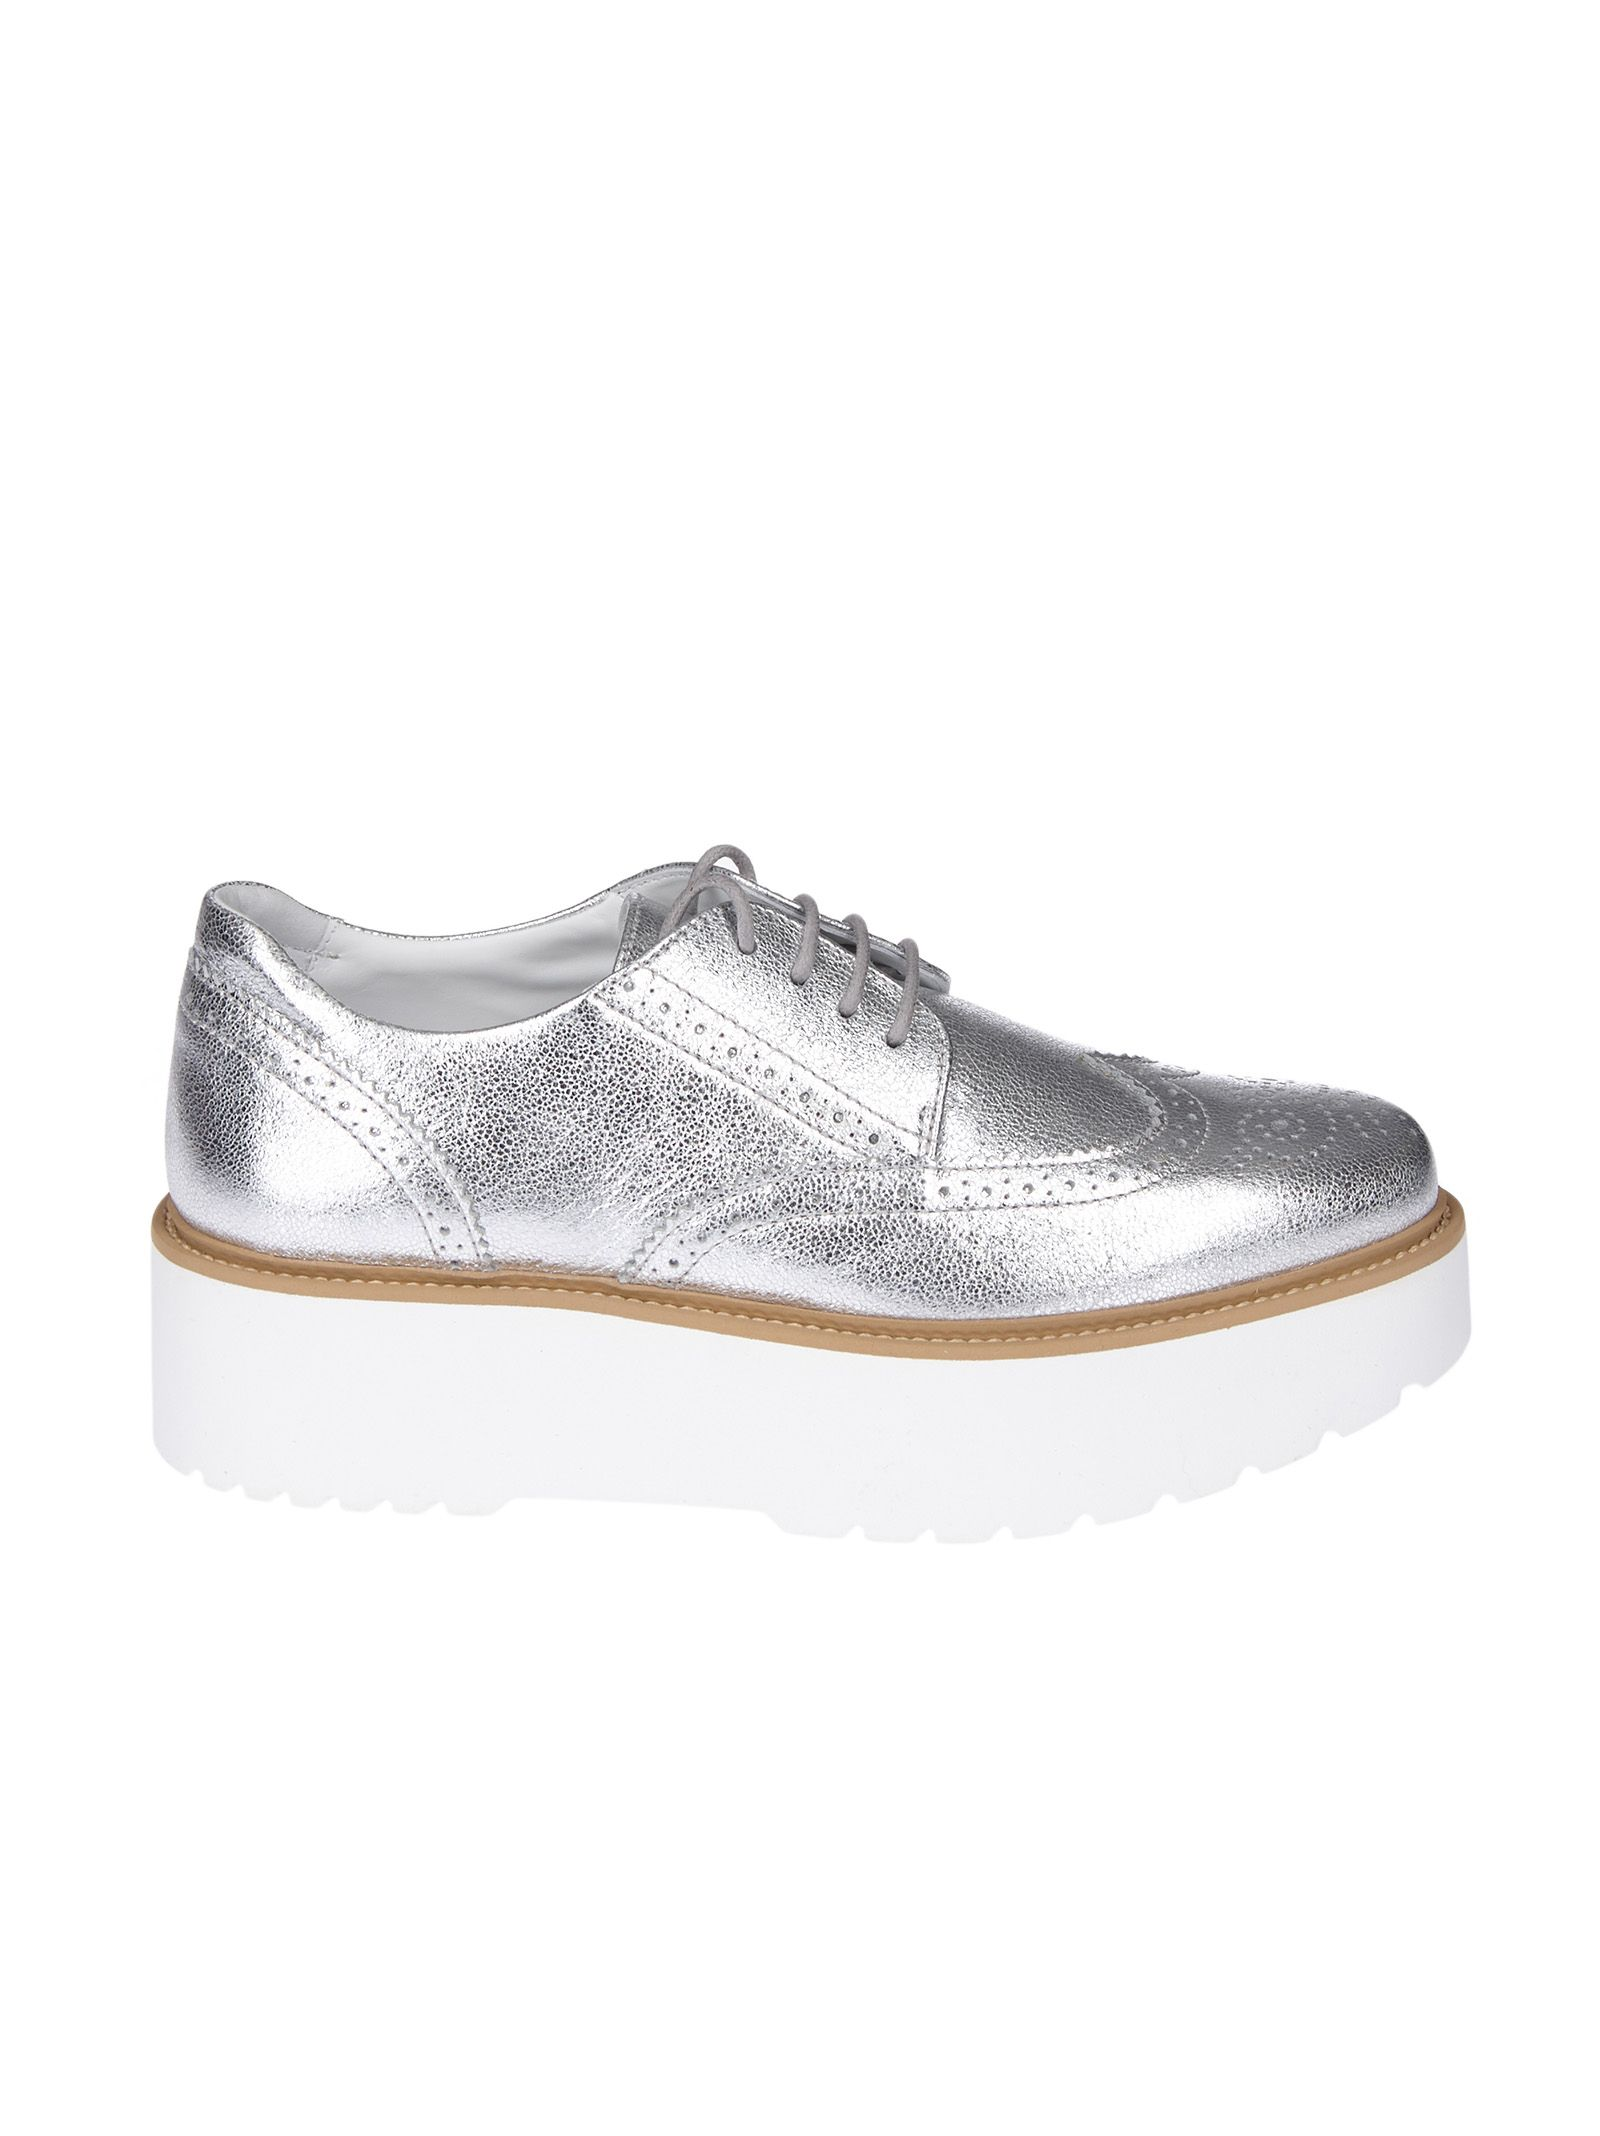 Hogan H355 Metallic Leather Derby Shoes In Silver